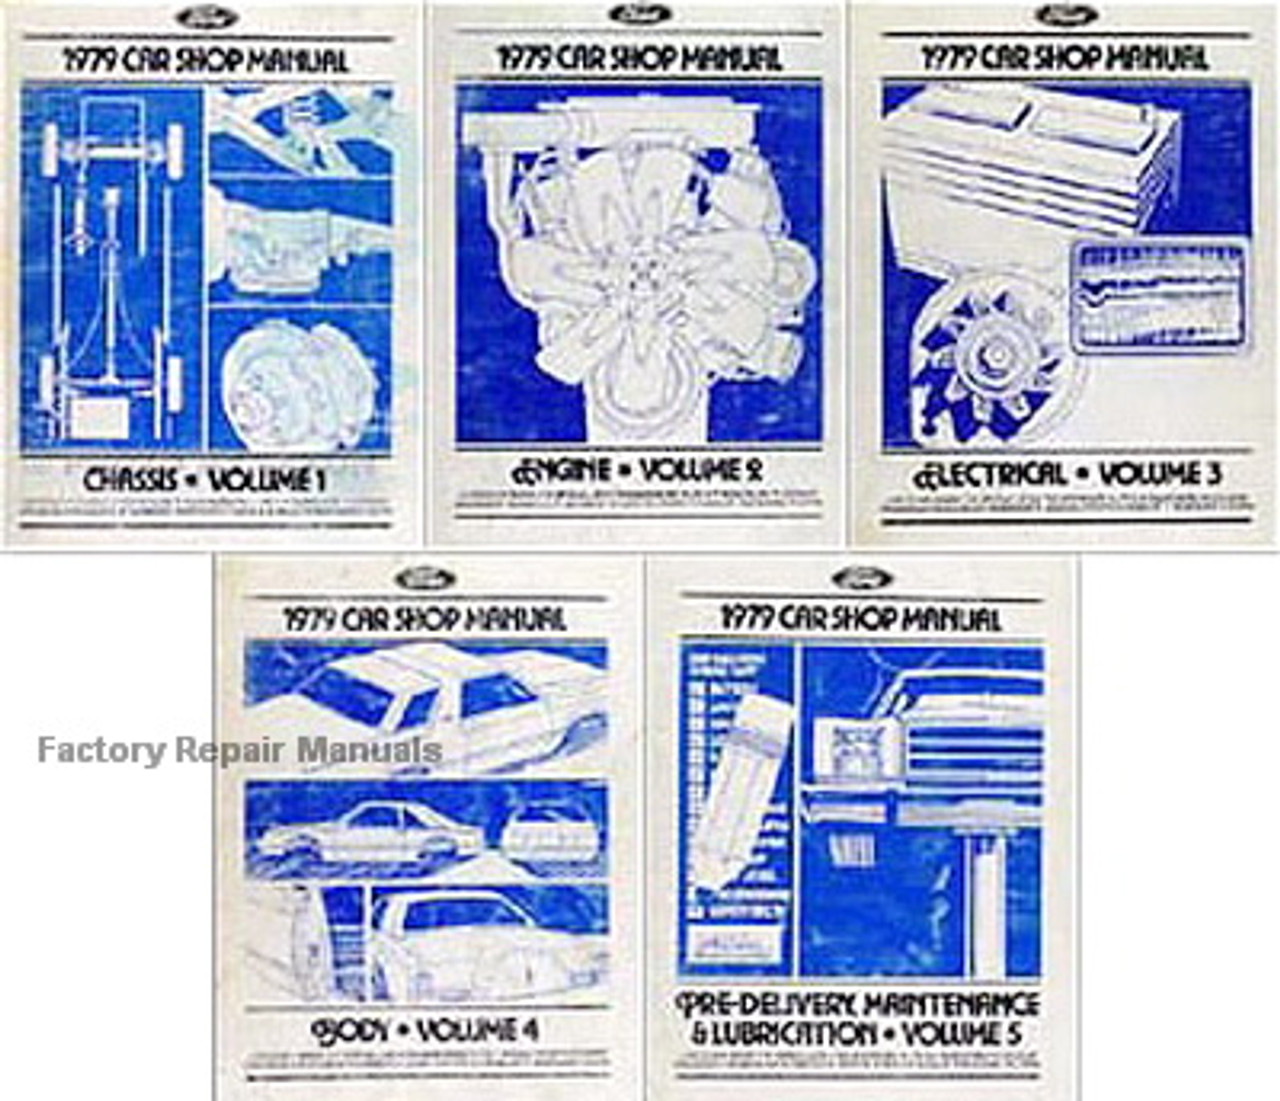 1979 Ford LTD Mercury Marquis Electrical and Vacuum Troubleshooting Manual